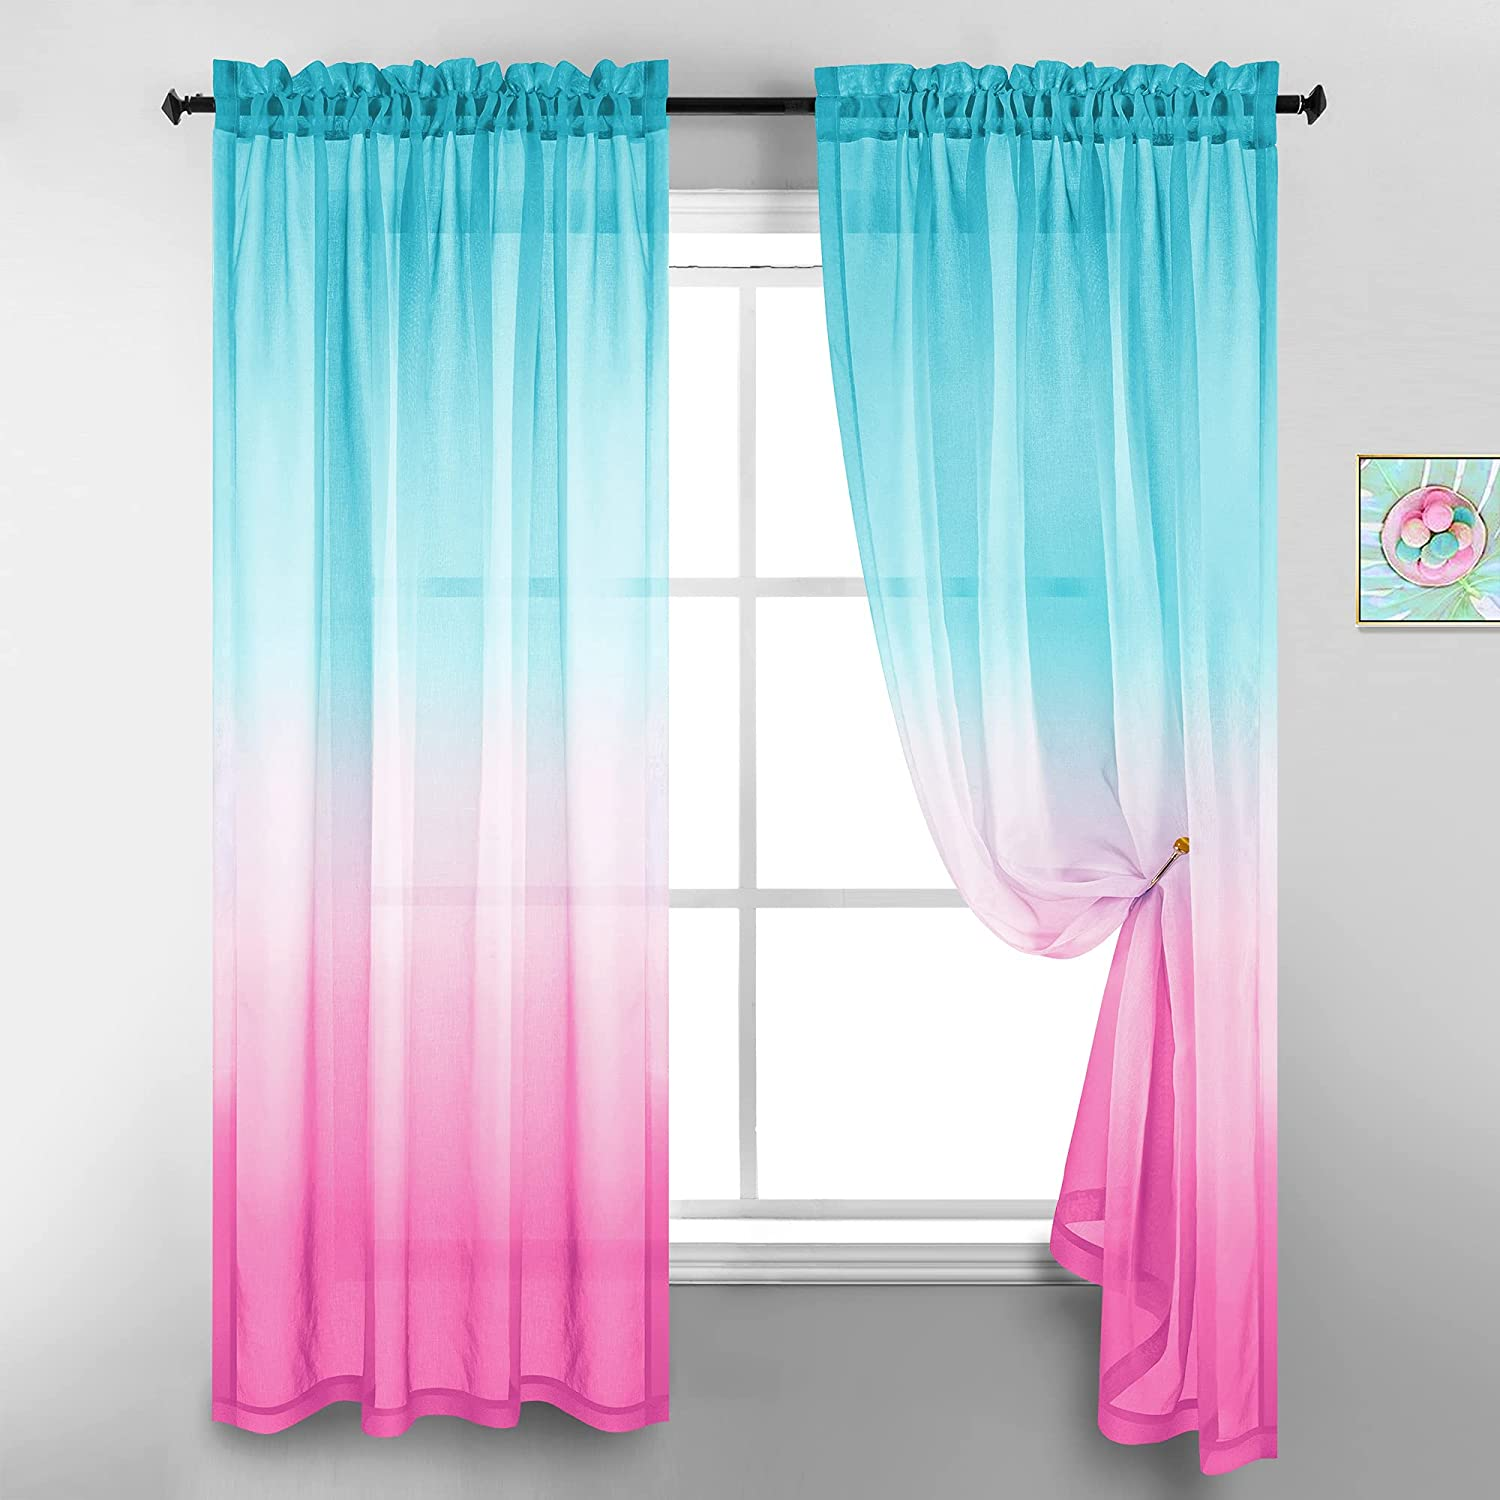 Teen Girl Bedroom Decor Ombre Sheer Light Pink Curtains for Girls Room Decorations Mermaid Aqua and Pink 52 x 84 Inch Length